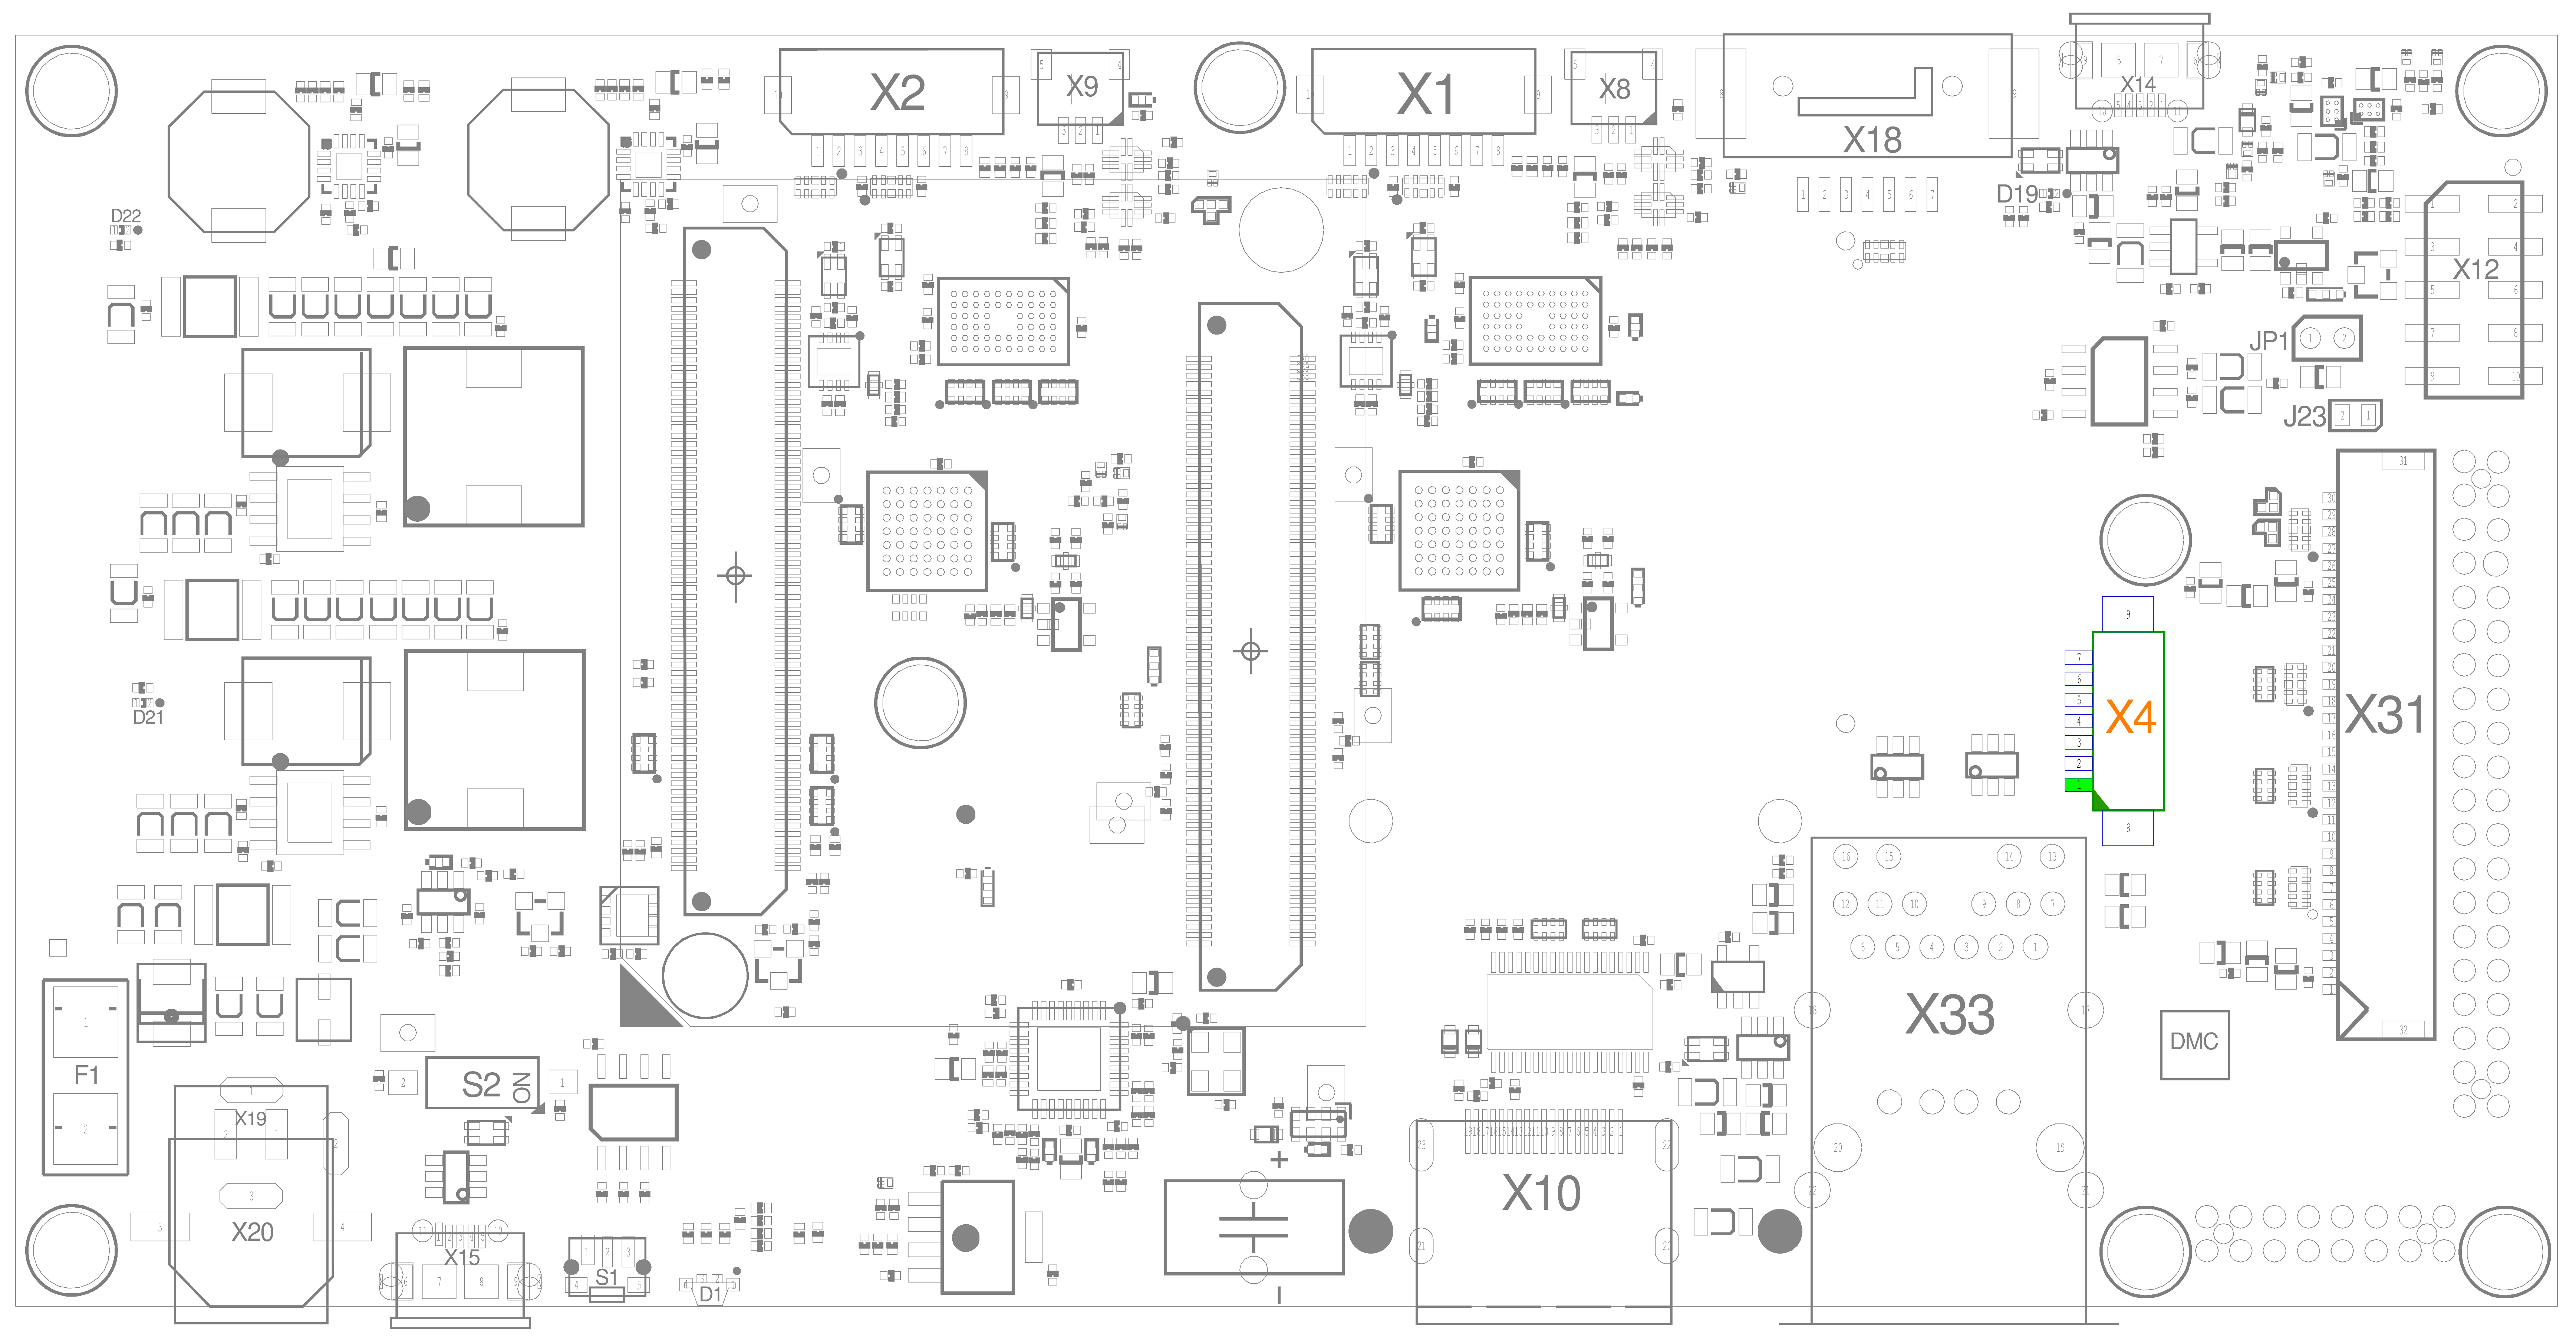 Backlight and Display Control Connector (X4)